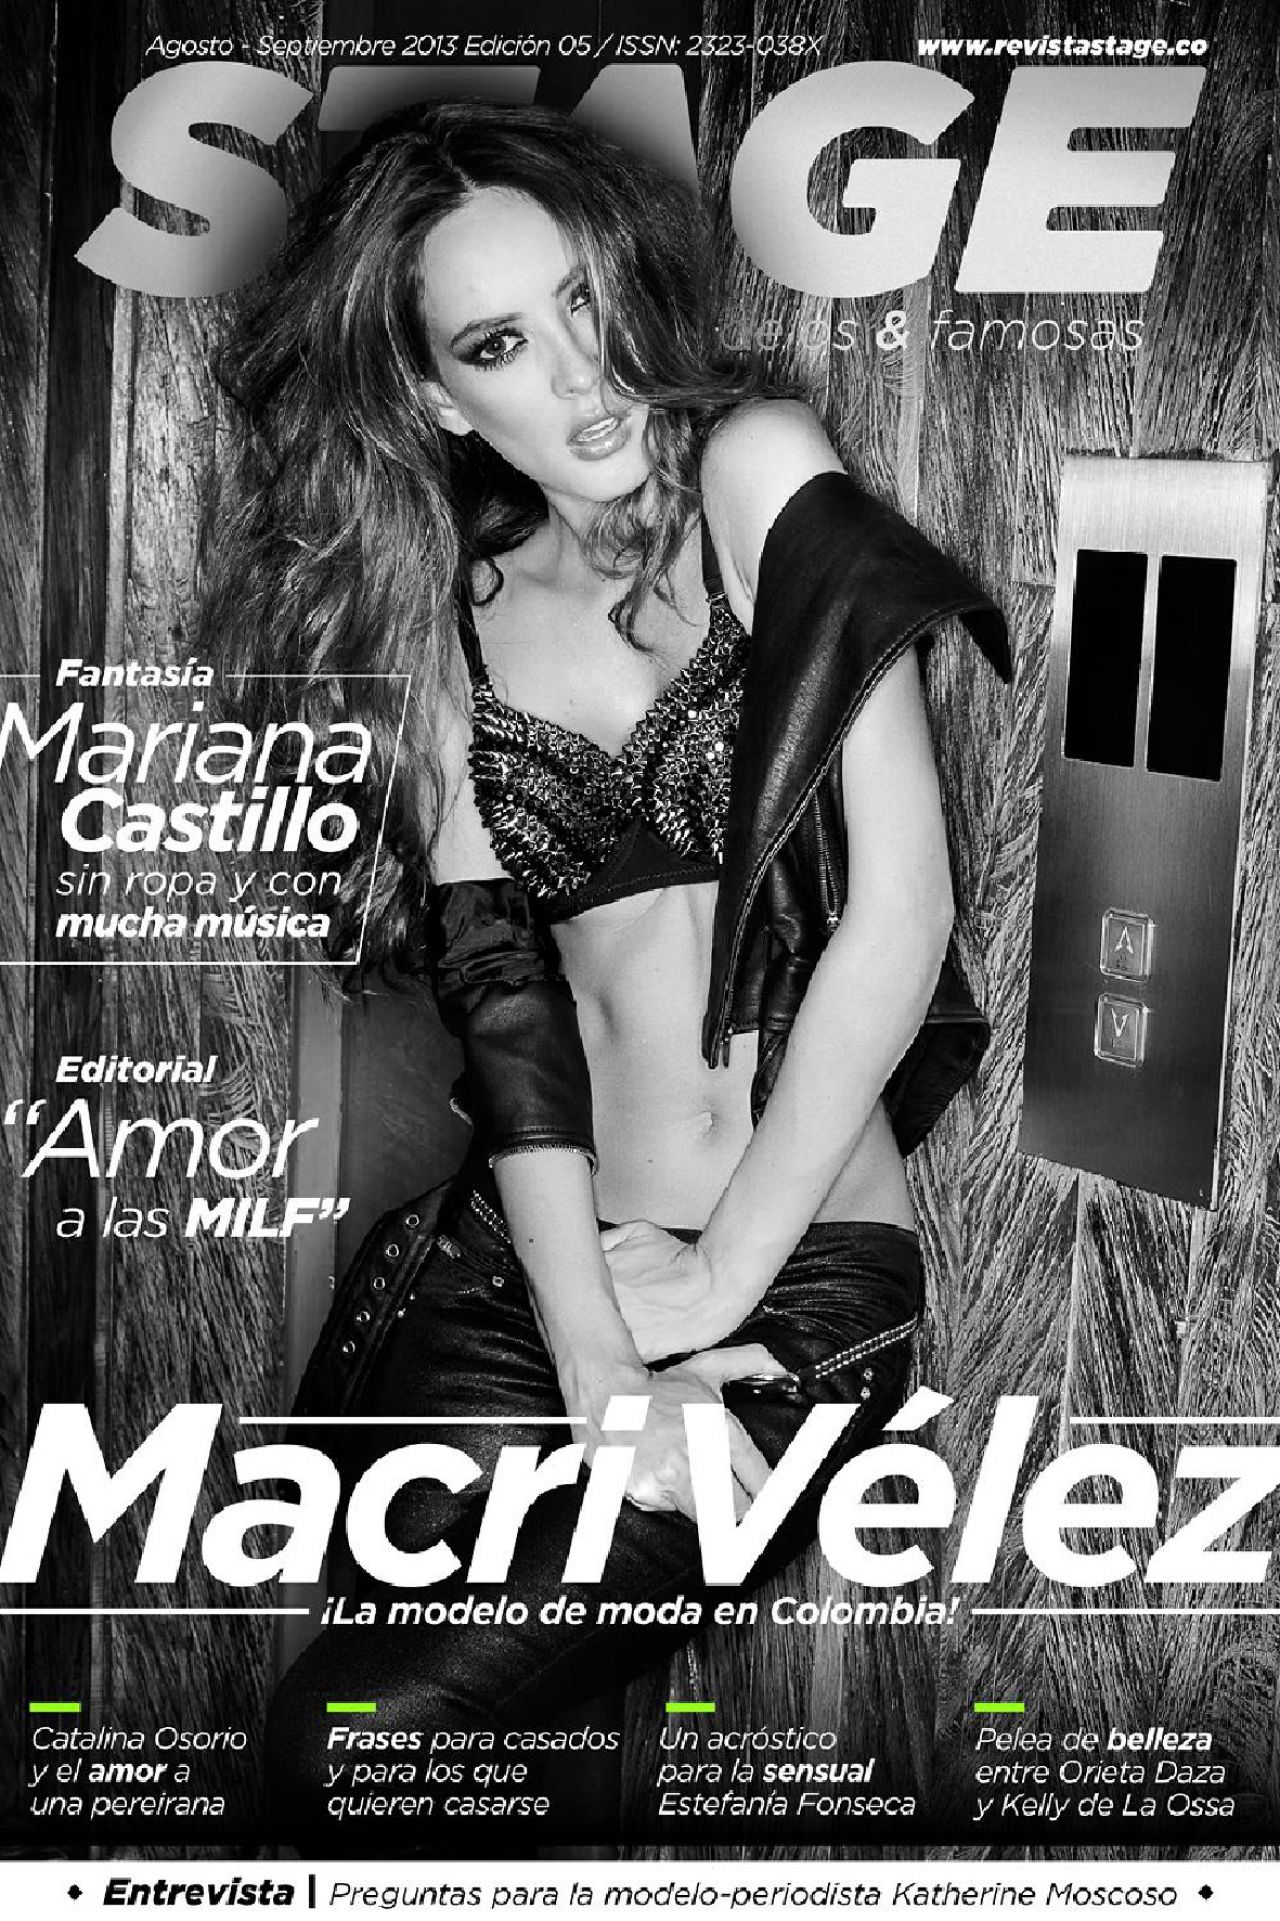 Macri Elena Vélez Sánchez - Revista STAGE (Colombia) - August/September 2013 Issue